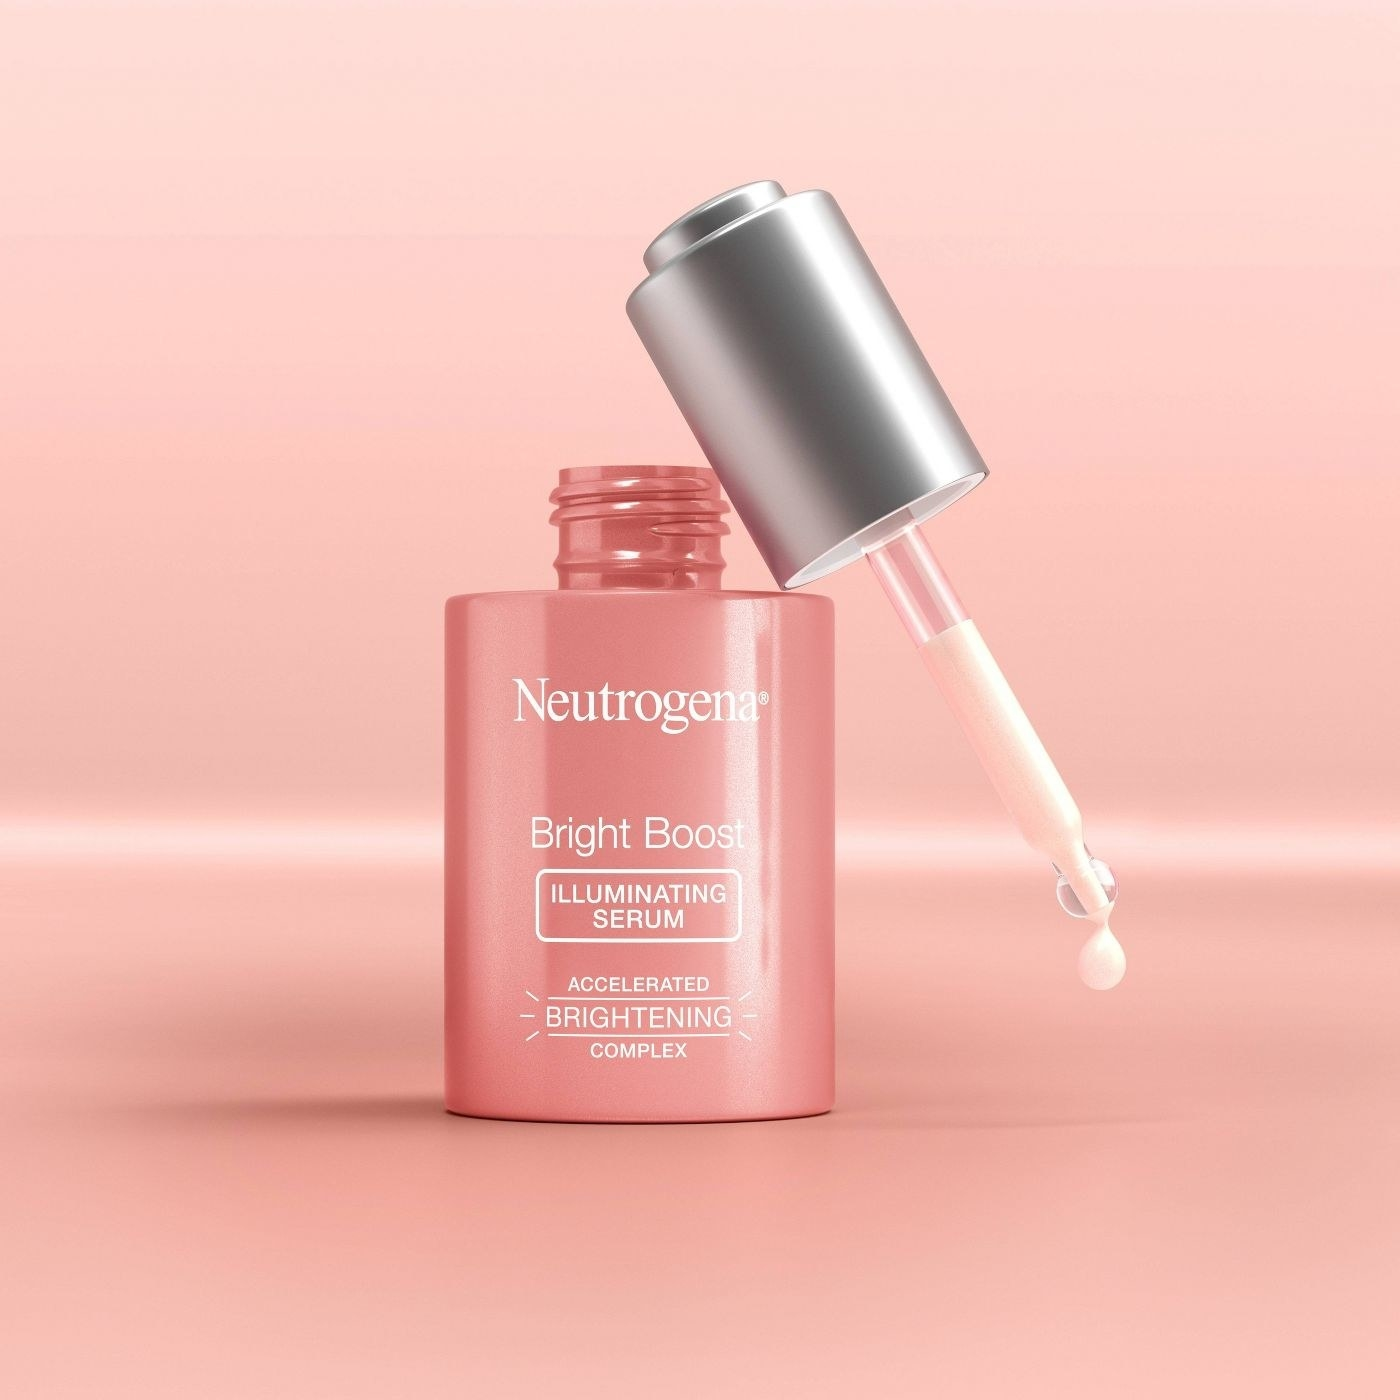 A pink dropper bottle of an illuminating serum on a pink backrop